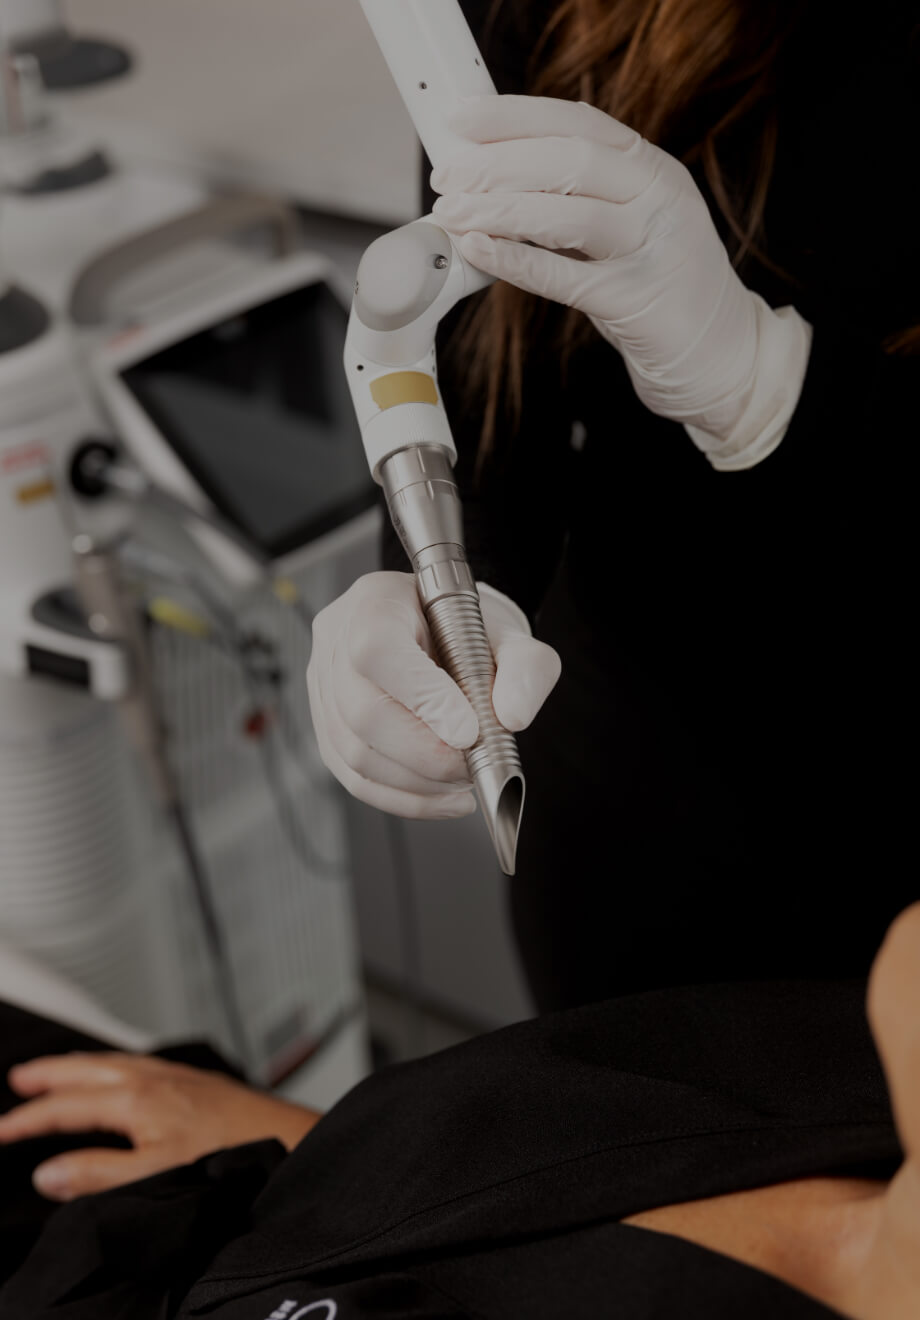 A Clinique Chloé medical aesthetic technician holding the SmoothLiftin laser handpiece near a patient's mouth